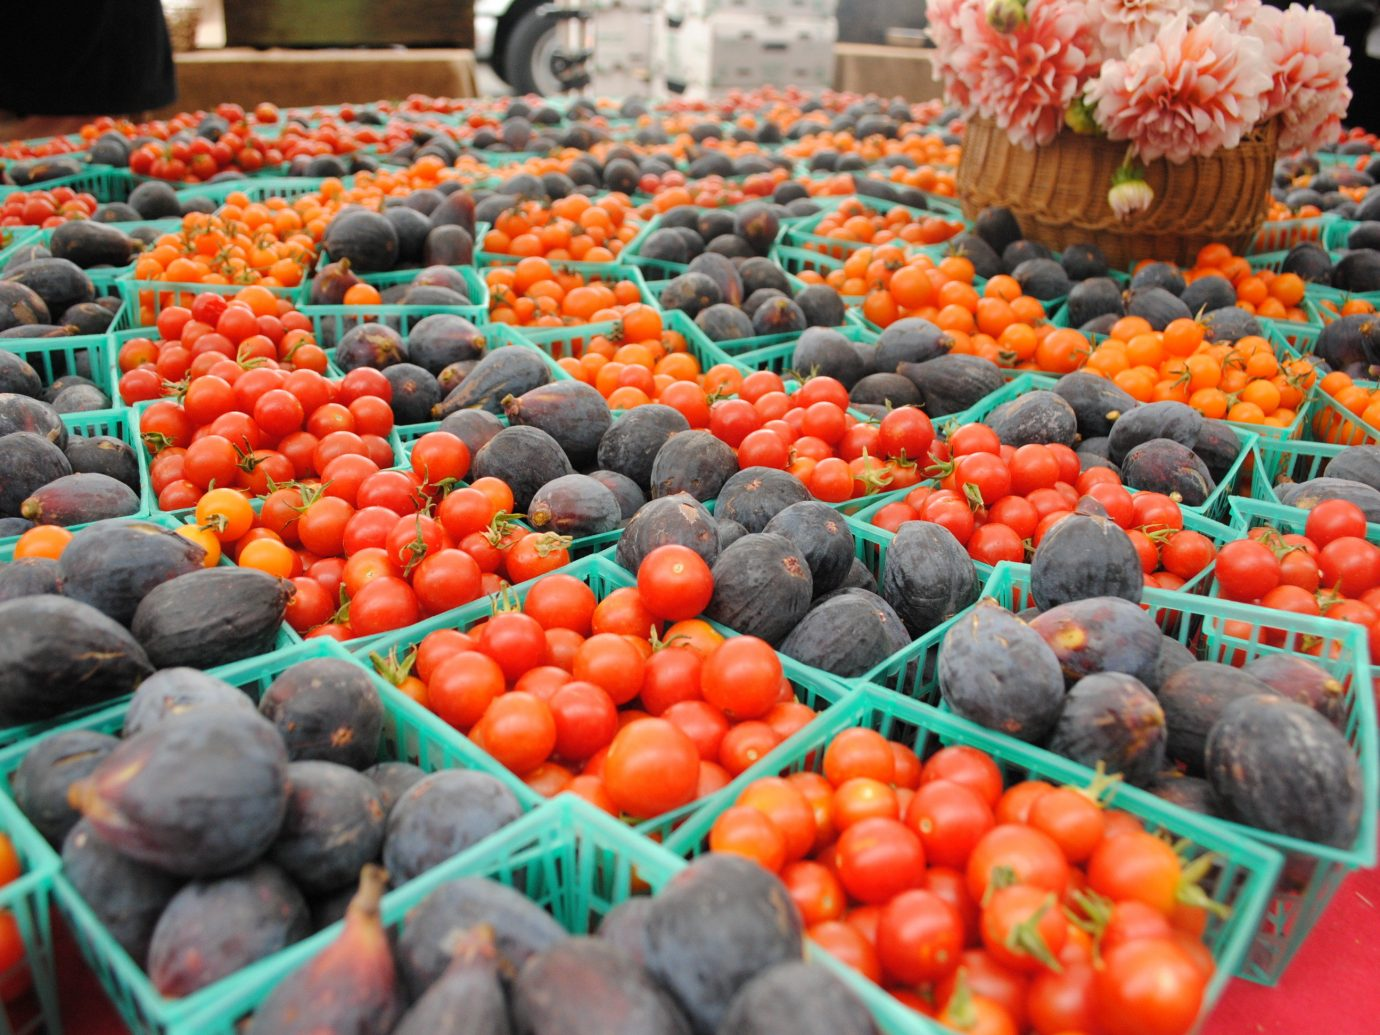 Food + Drink marketplace market food public space City plant human settlement produce fruit vendor land plant greengrocer flower vegetable different flowering plant colorful fresh sale arranged colored